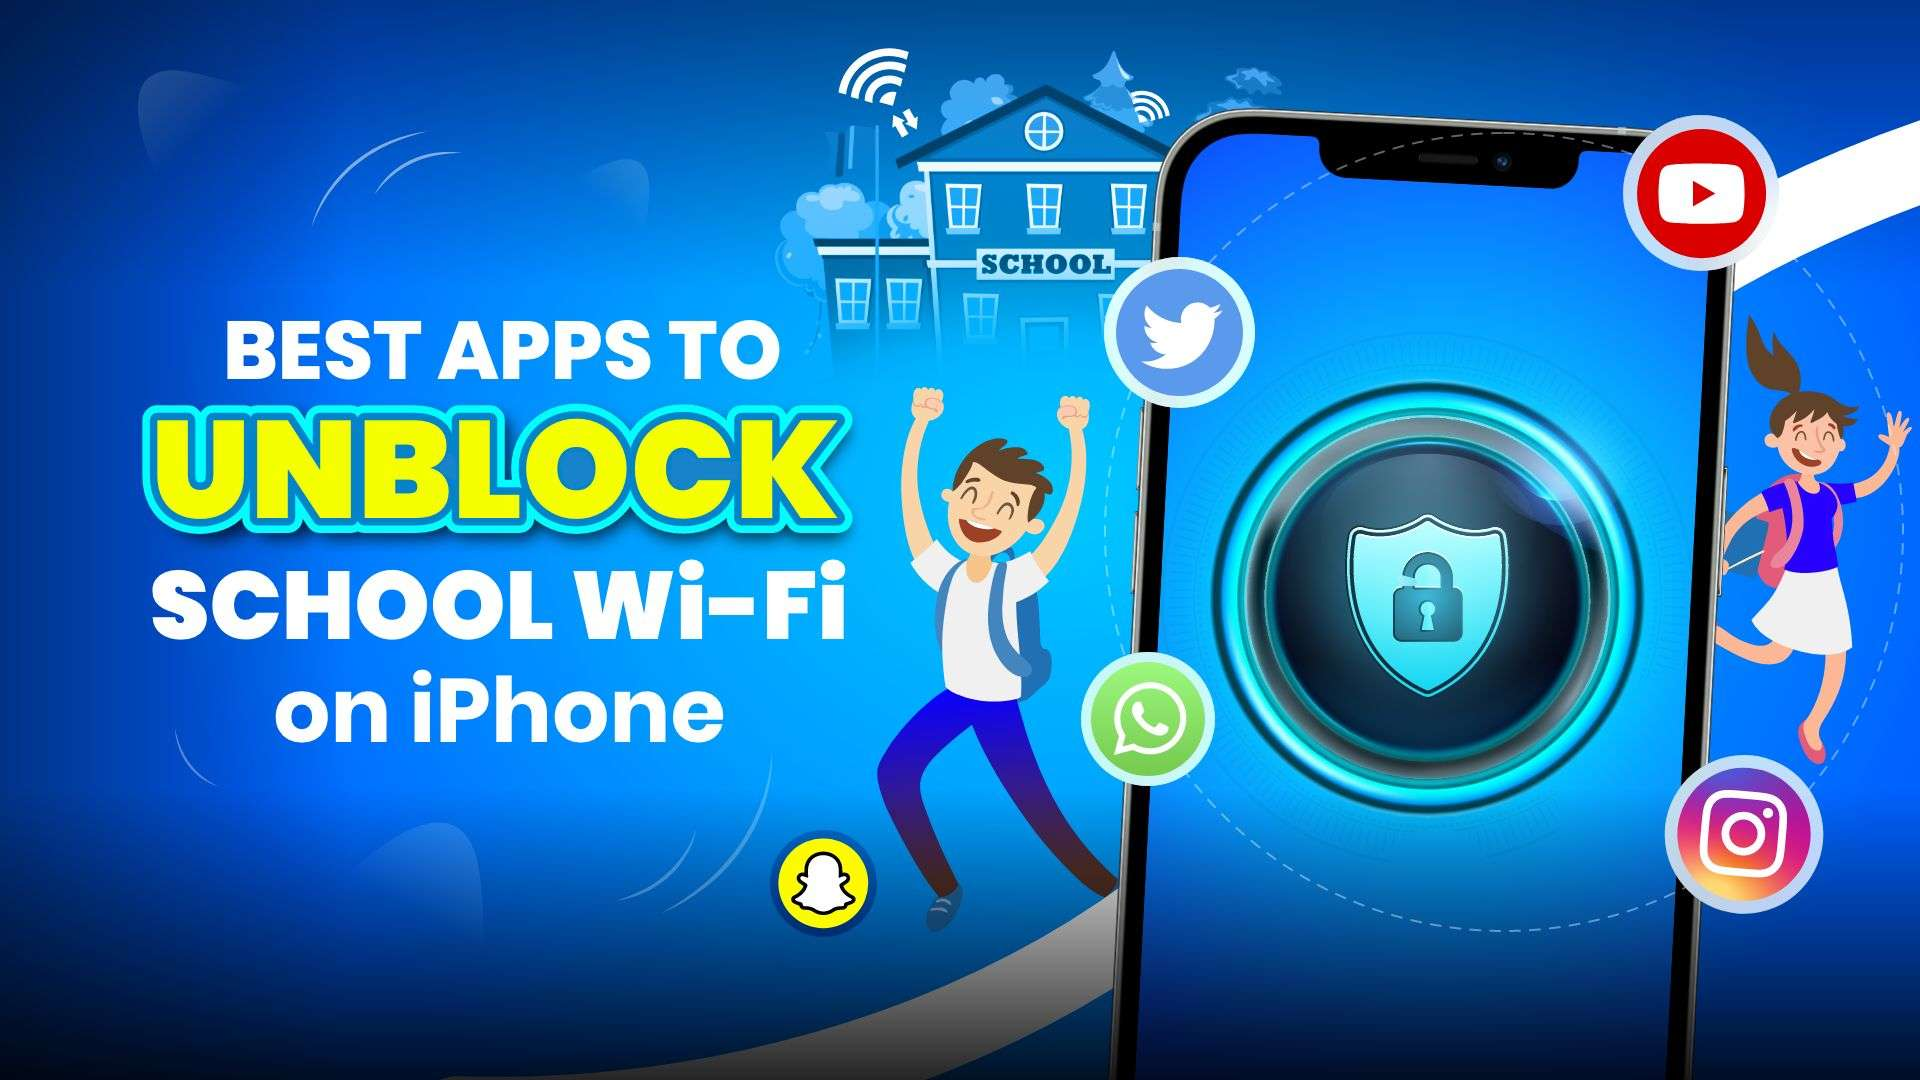 10 best apps to unblock school wifi restrictions on iPhone